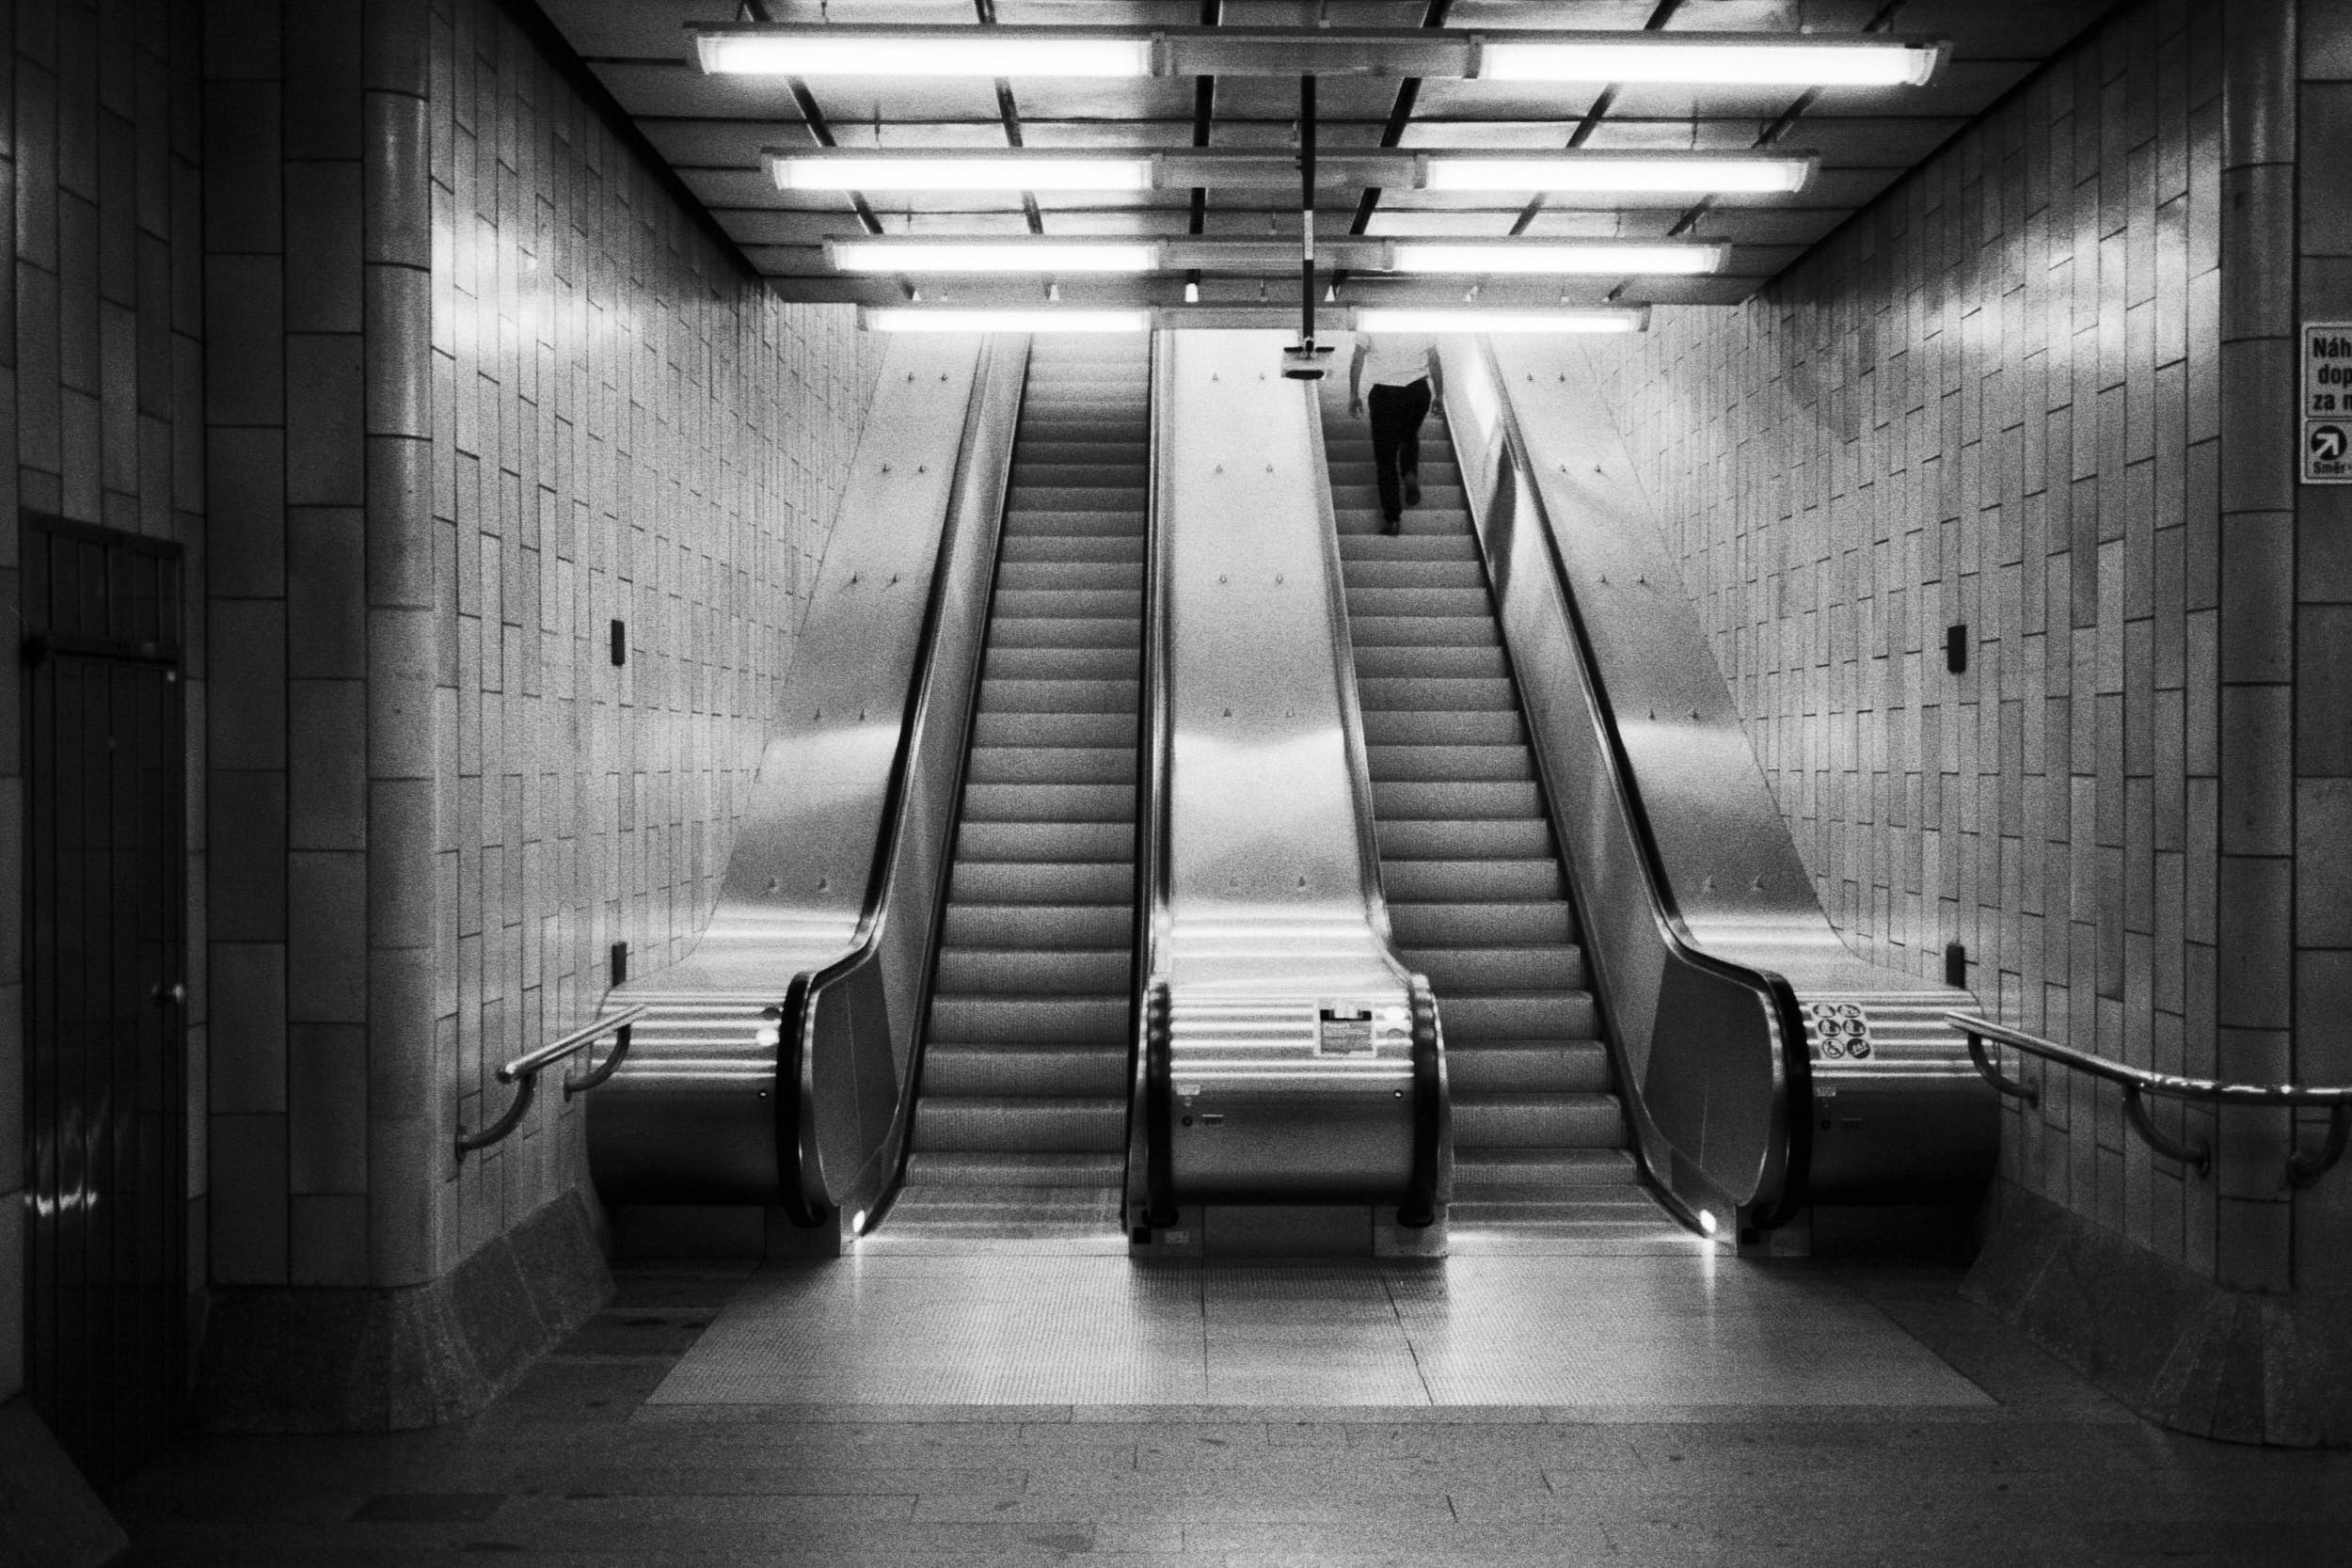 Black and white street photography: underground station escalator with solitary person riding up.